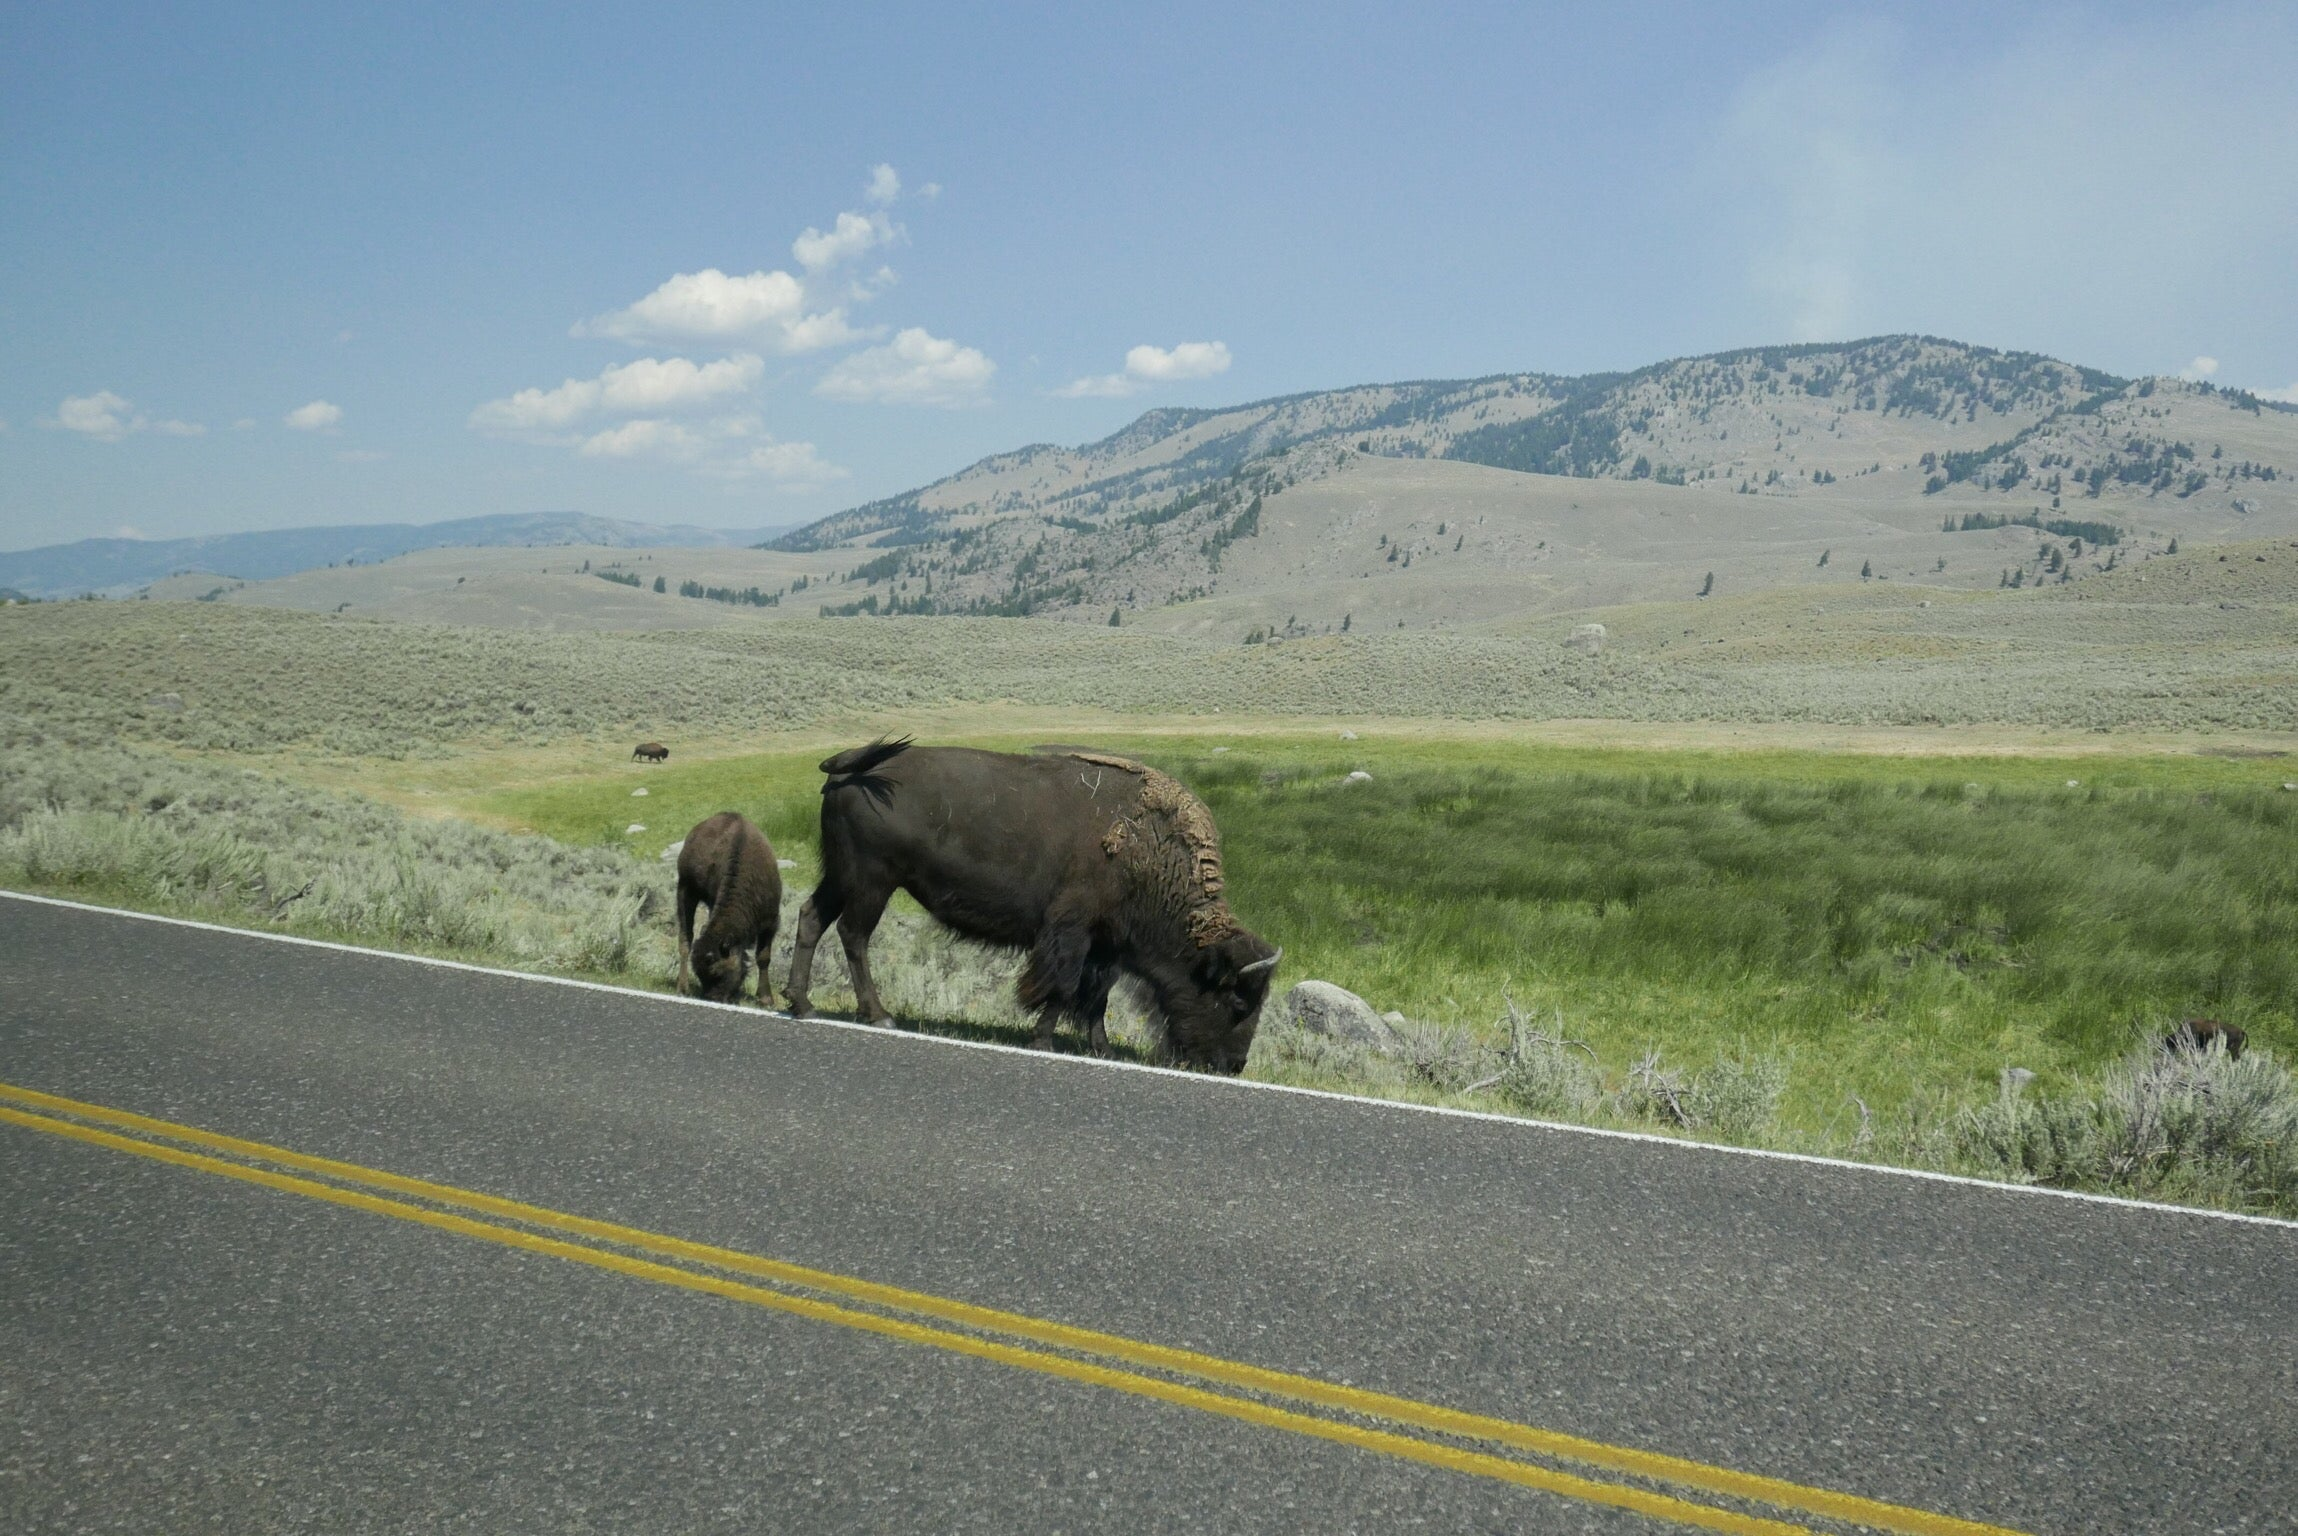 Coral & Tusk Bison spotting at Yellowstone National Park, Lamar Valley